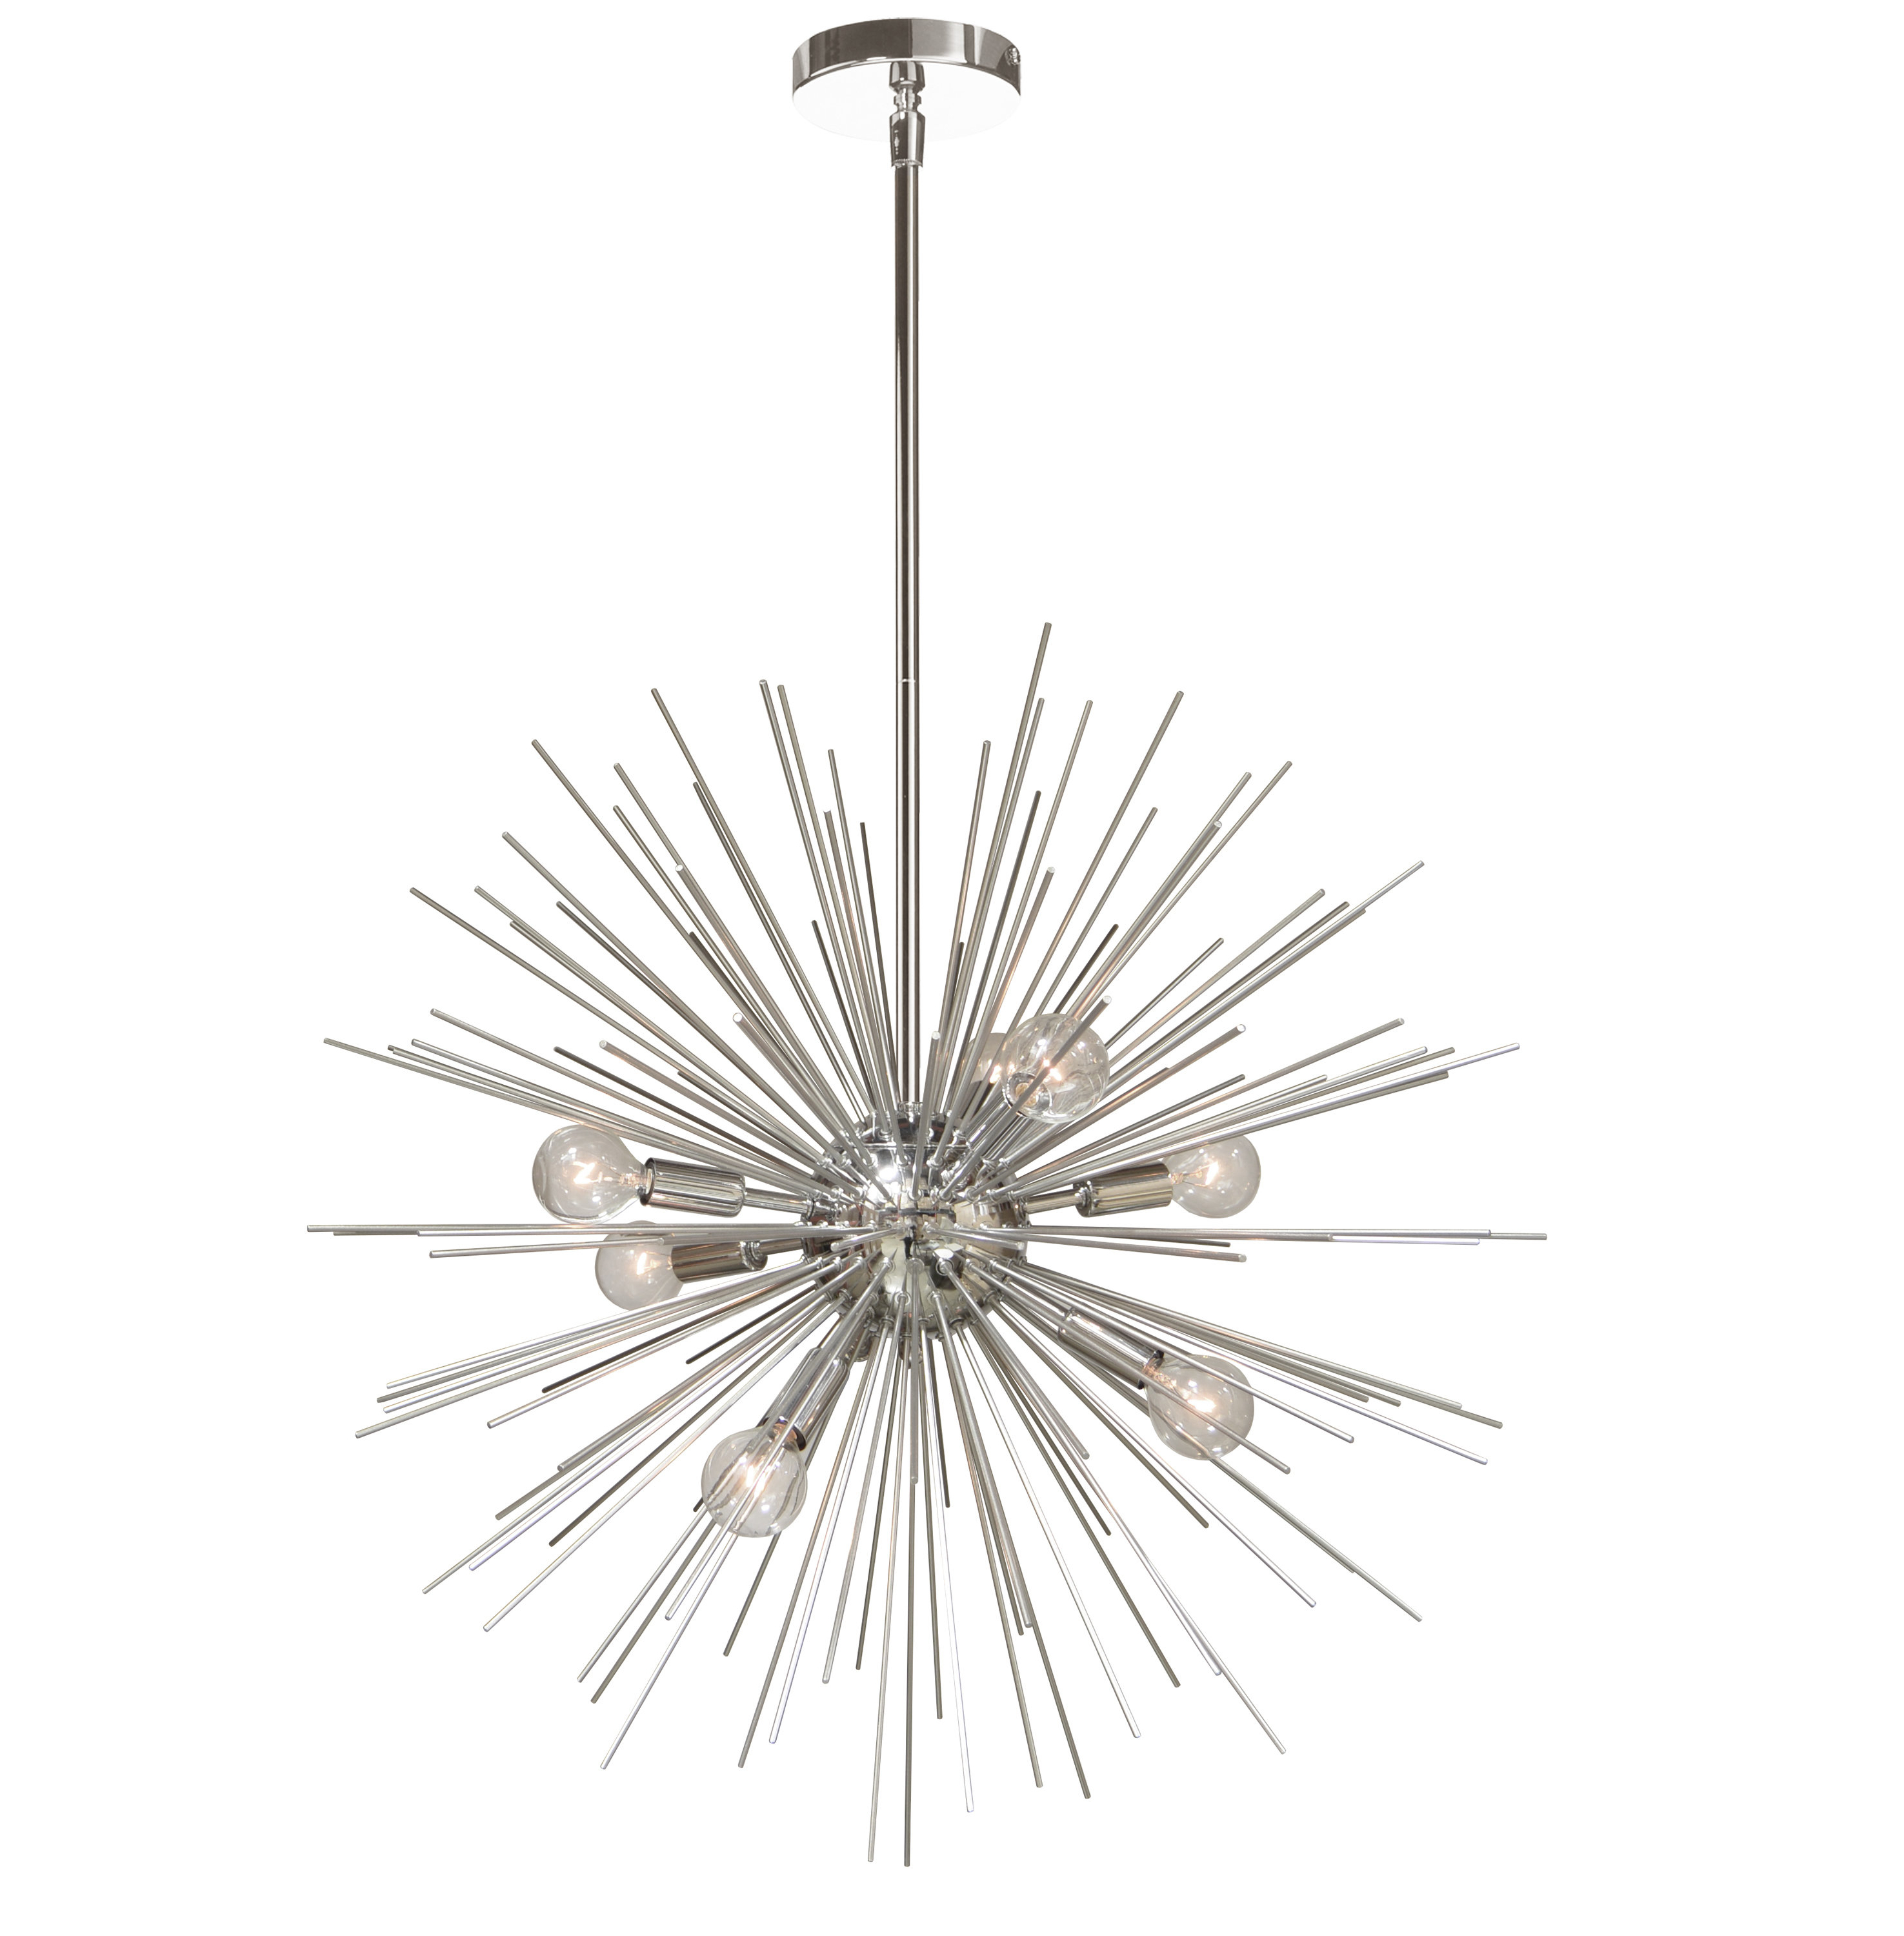 Corona 12 Light Sputnik Chandeliers With 2019 Celvin Charboneau 8 Light Sputnik Chandelier (View 23 of 25)